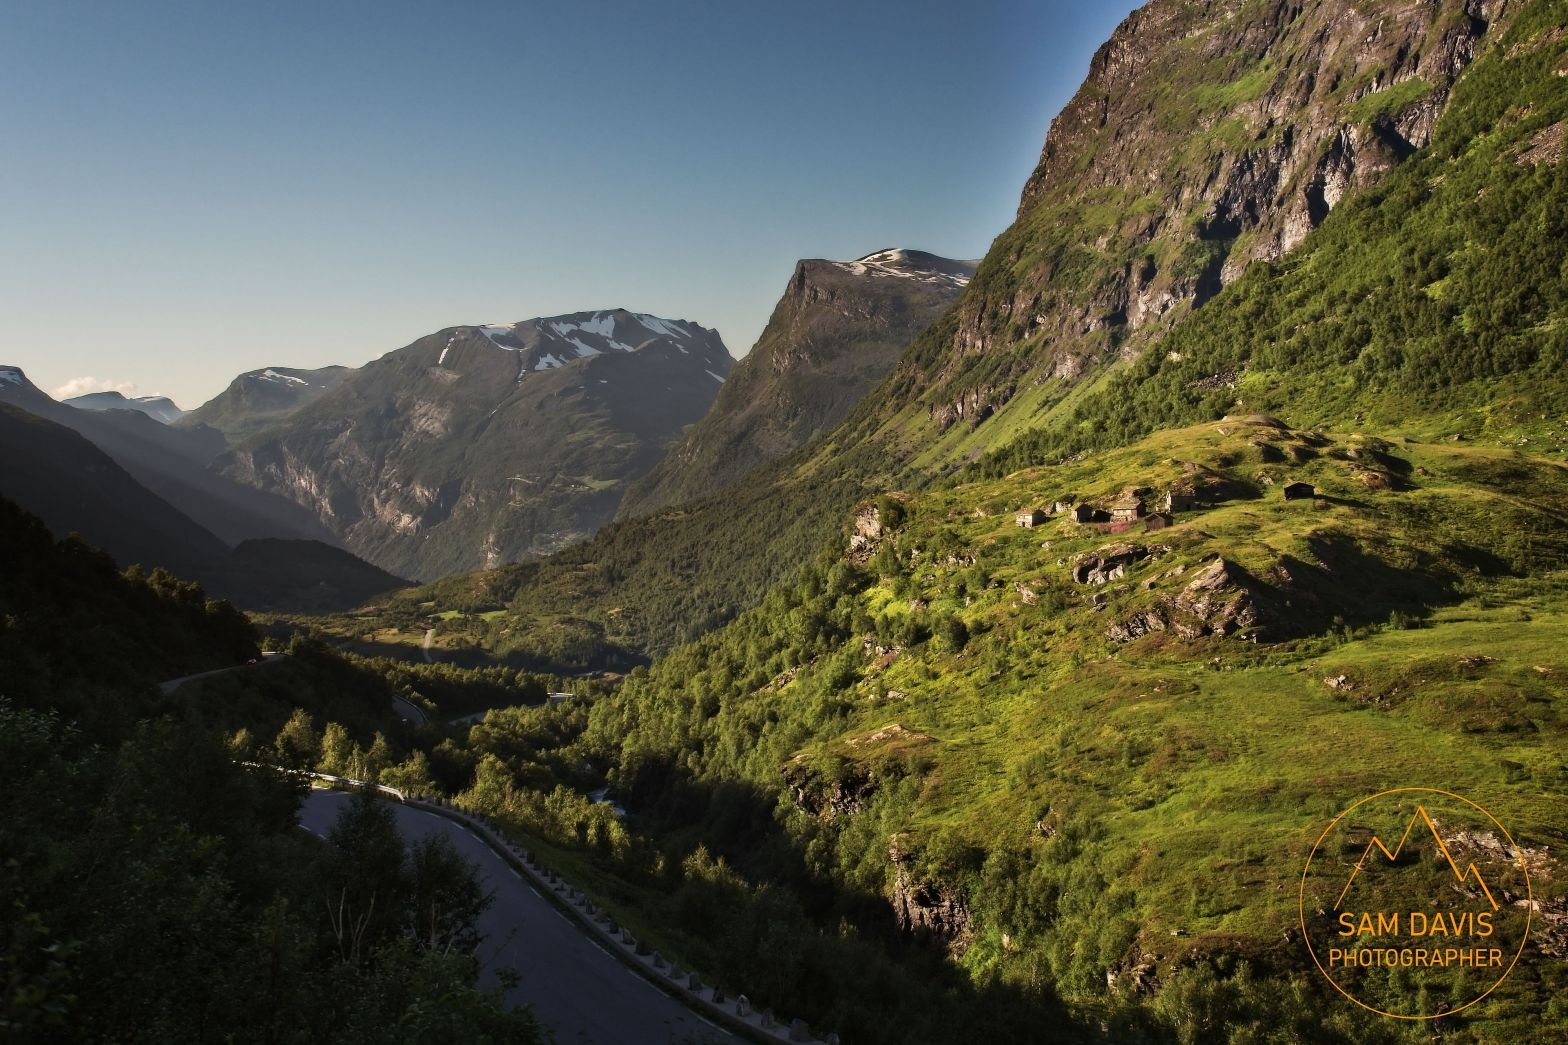 Looking back down Geiranger valley on route 63, Norway by Sam Davis Photographer